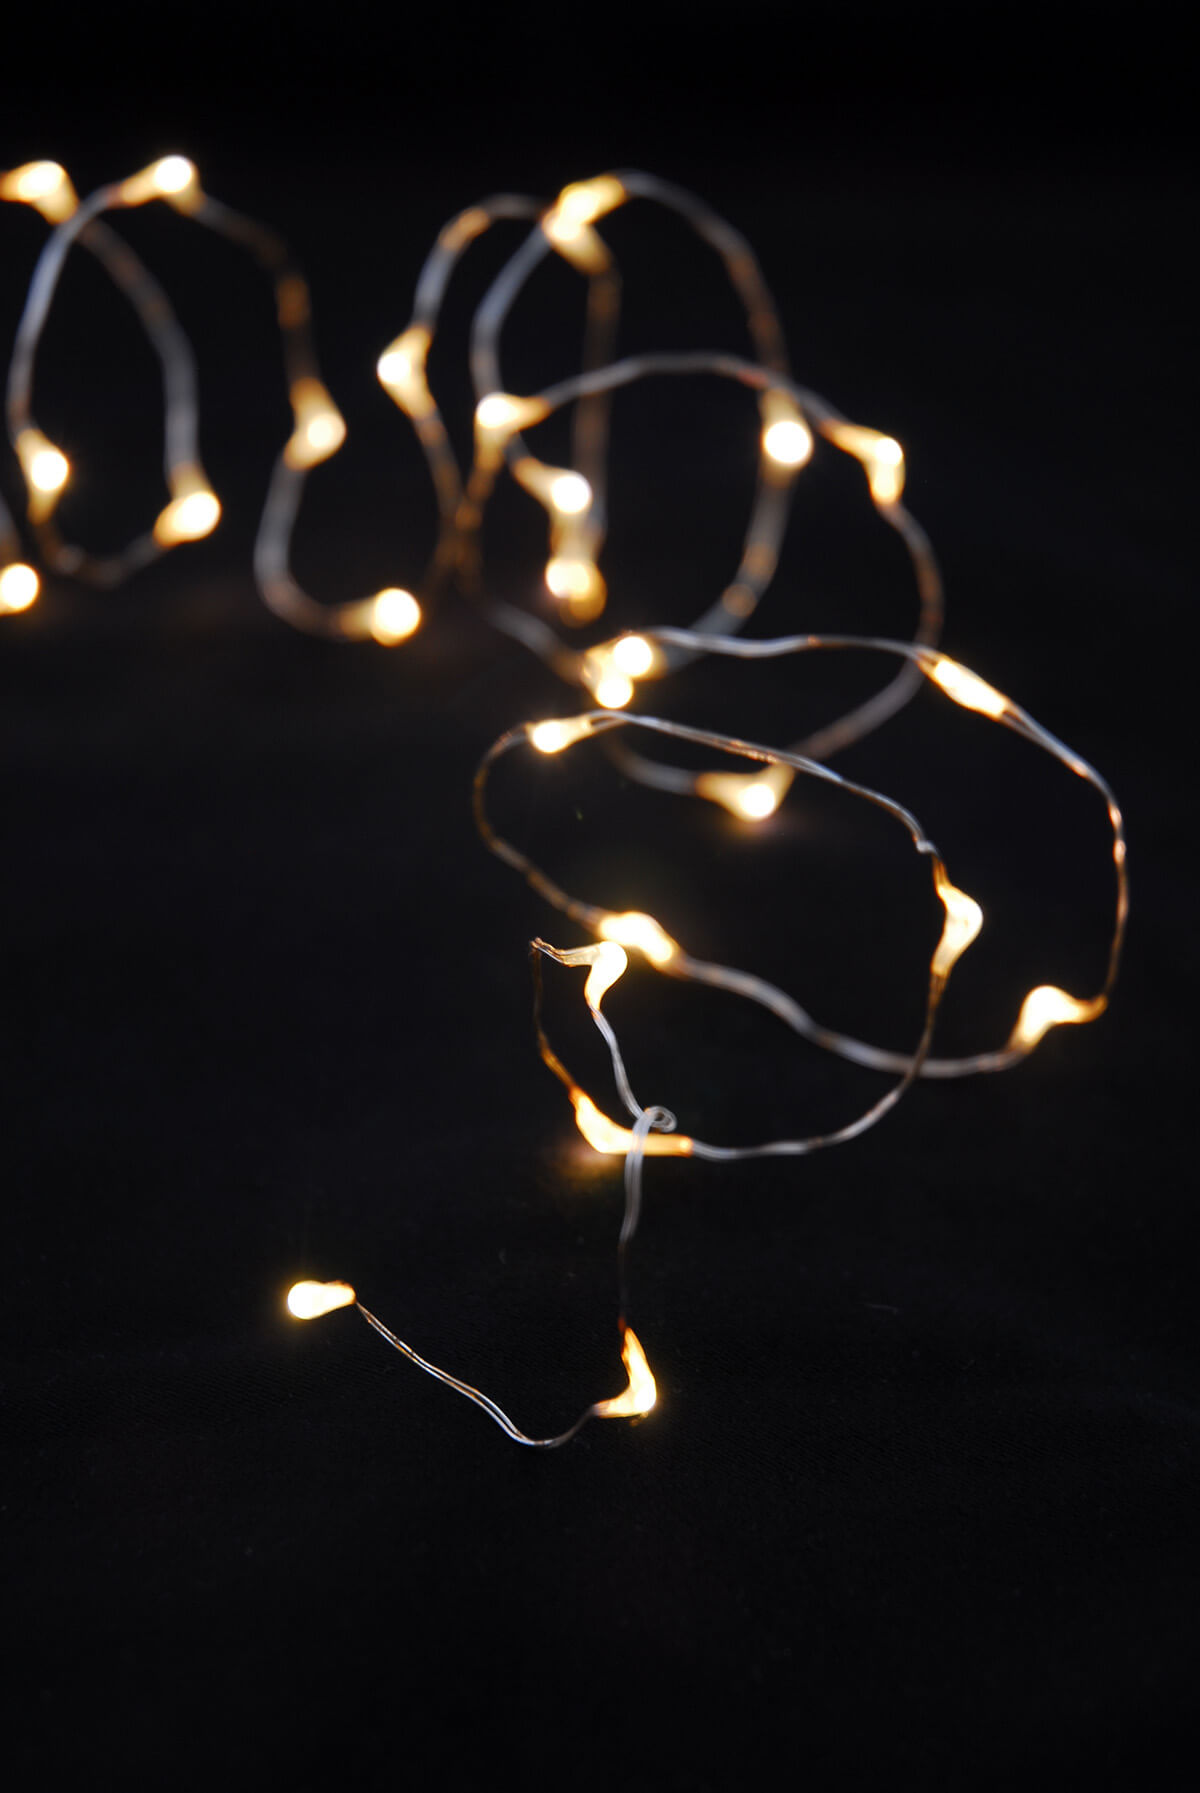 LED Warm White String Lights Battery Op. 7ft - 20ct Pack of 6